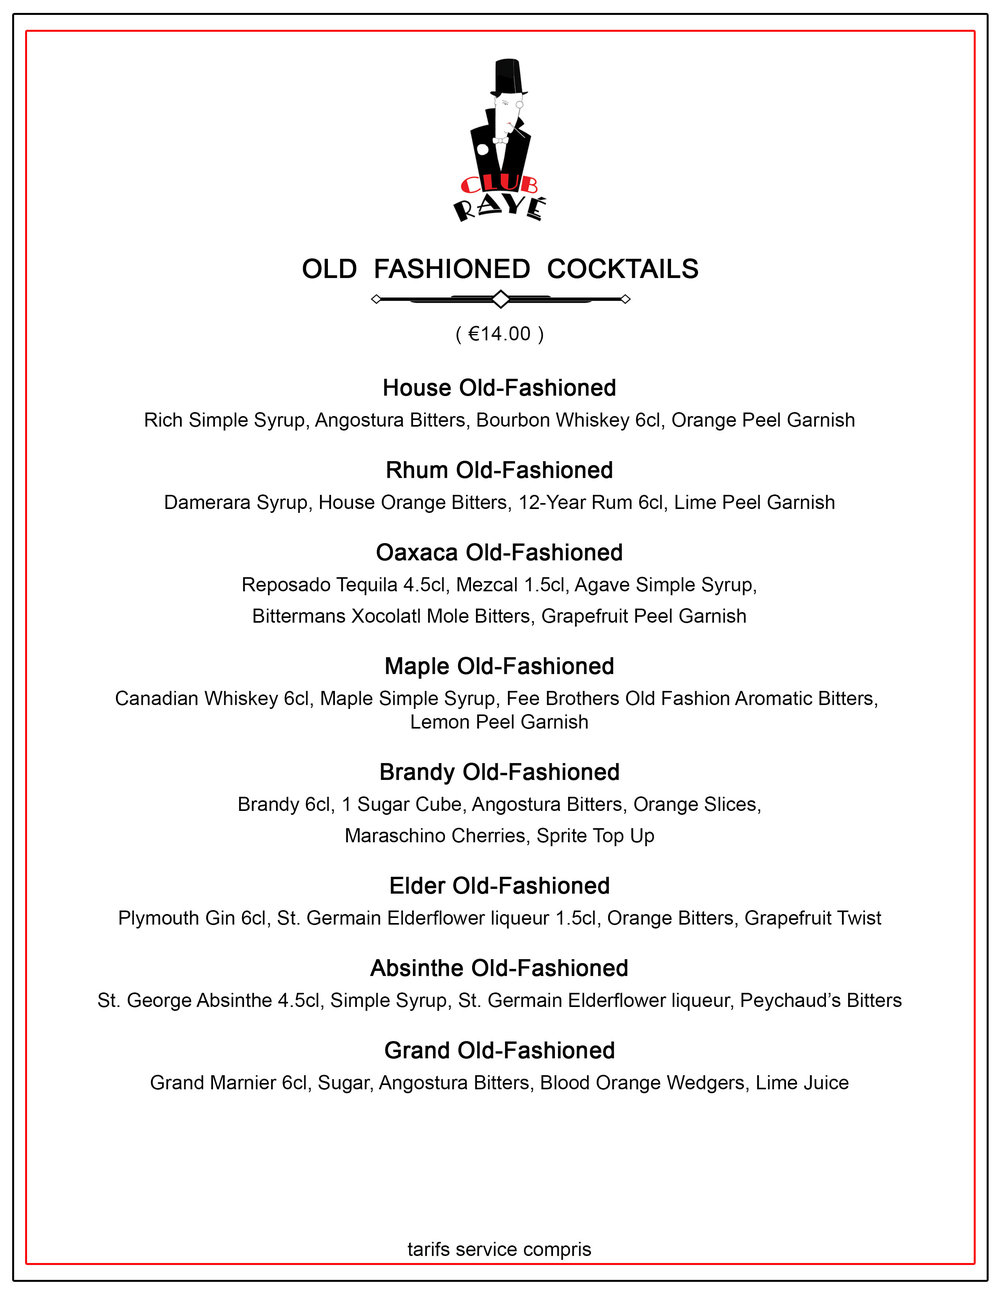 Old Fashioned Menu_3.0.jpg